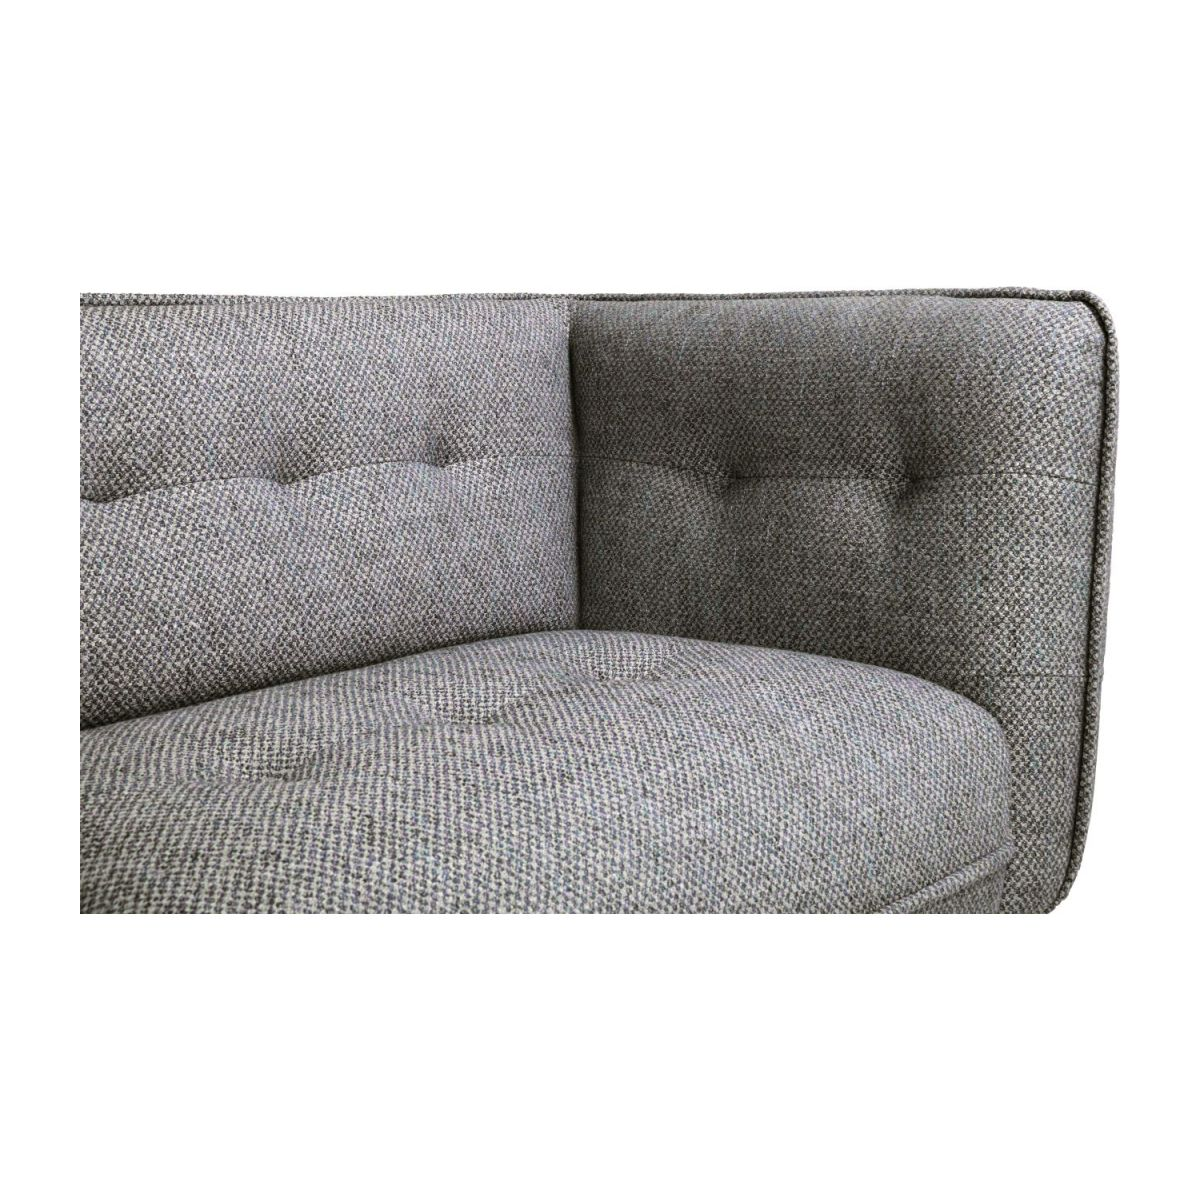 3 seater sofa in Bellagio fabric, night black and oak legs n°7